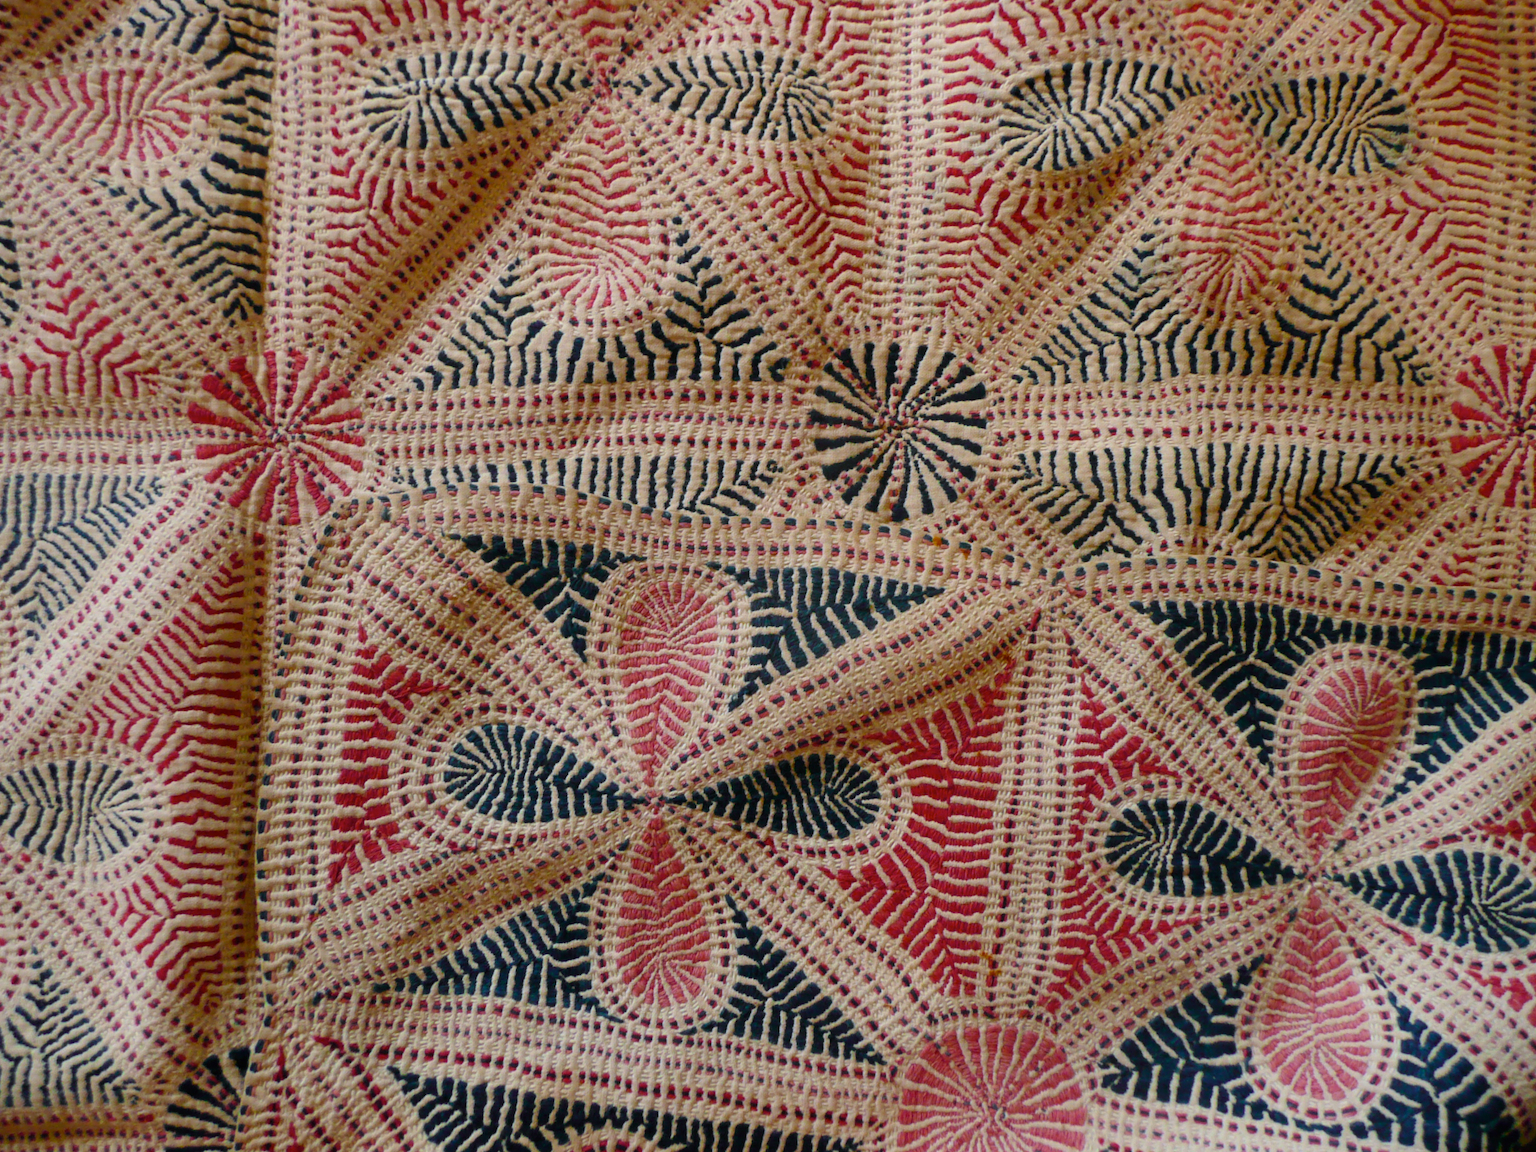 Kantha Embroidery Designs - Free Embroidery Patterns